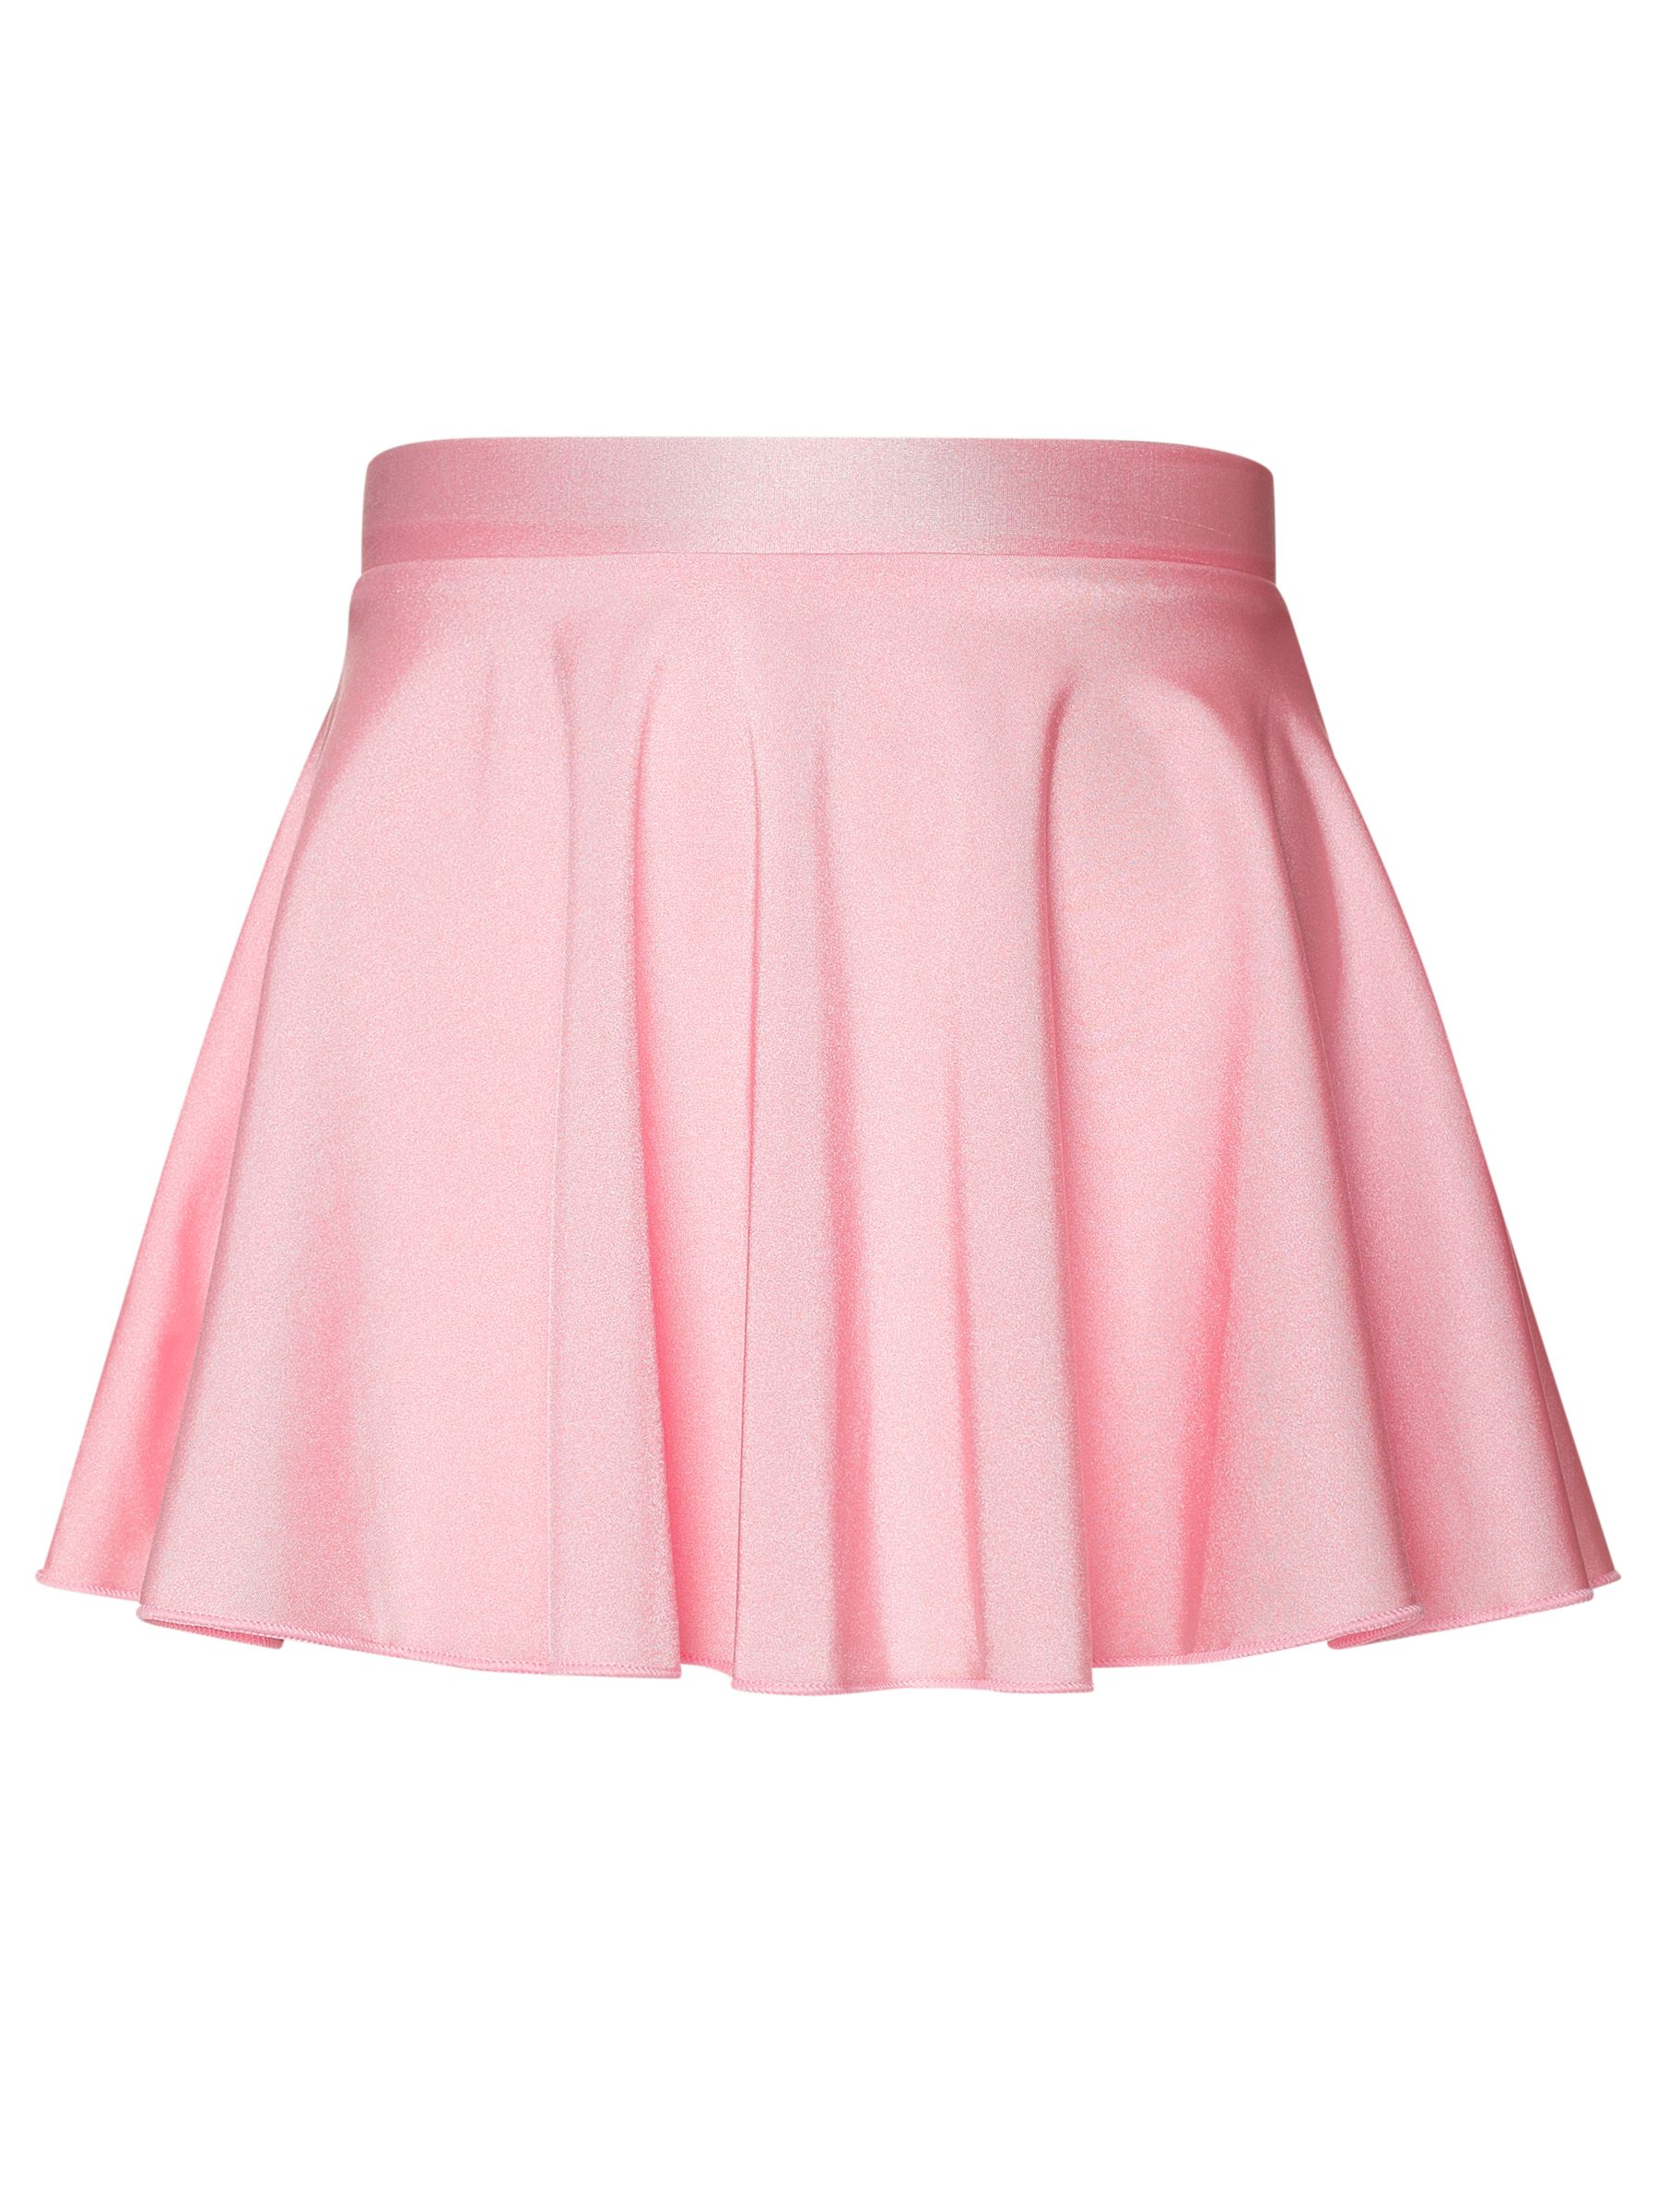 Tappers and Pointers Tappers and Pointers ISTD Circular Dance Skirt